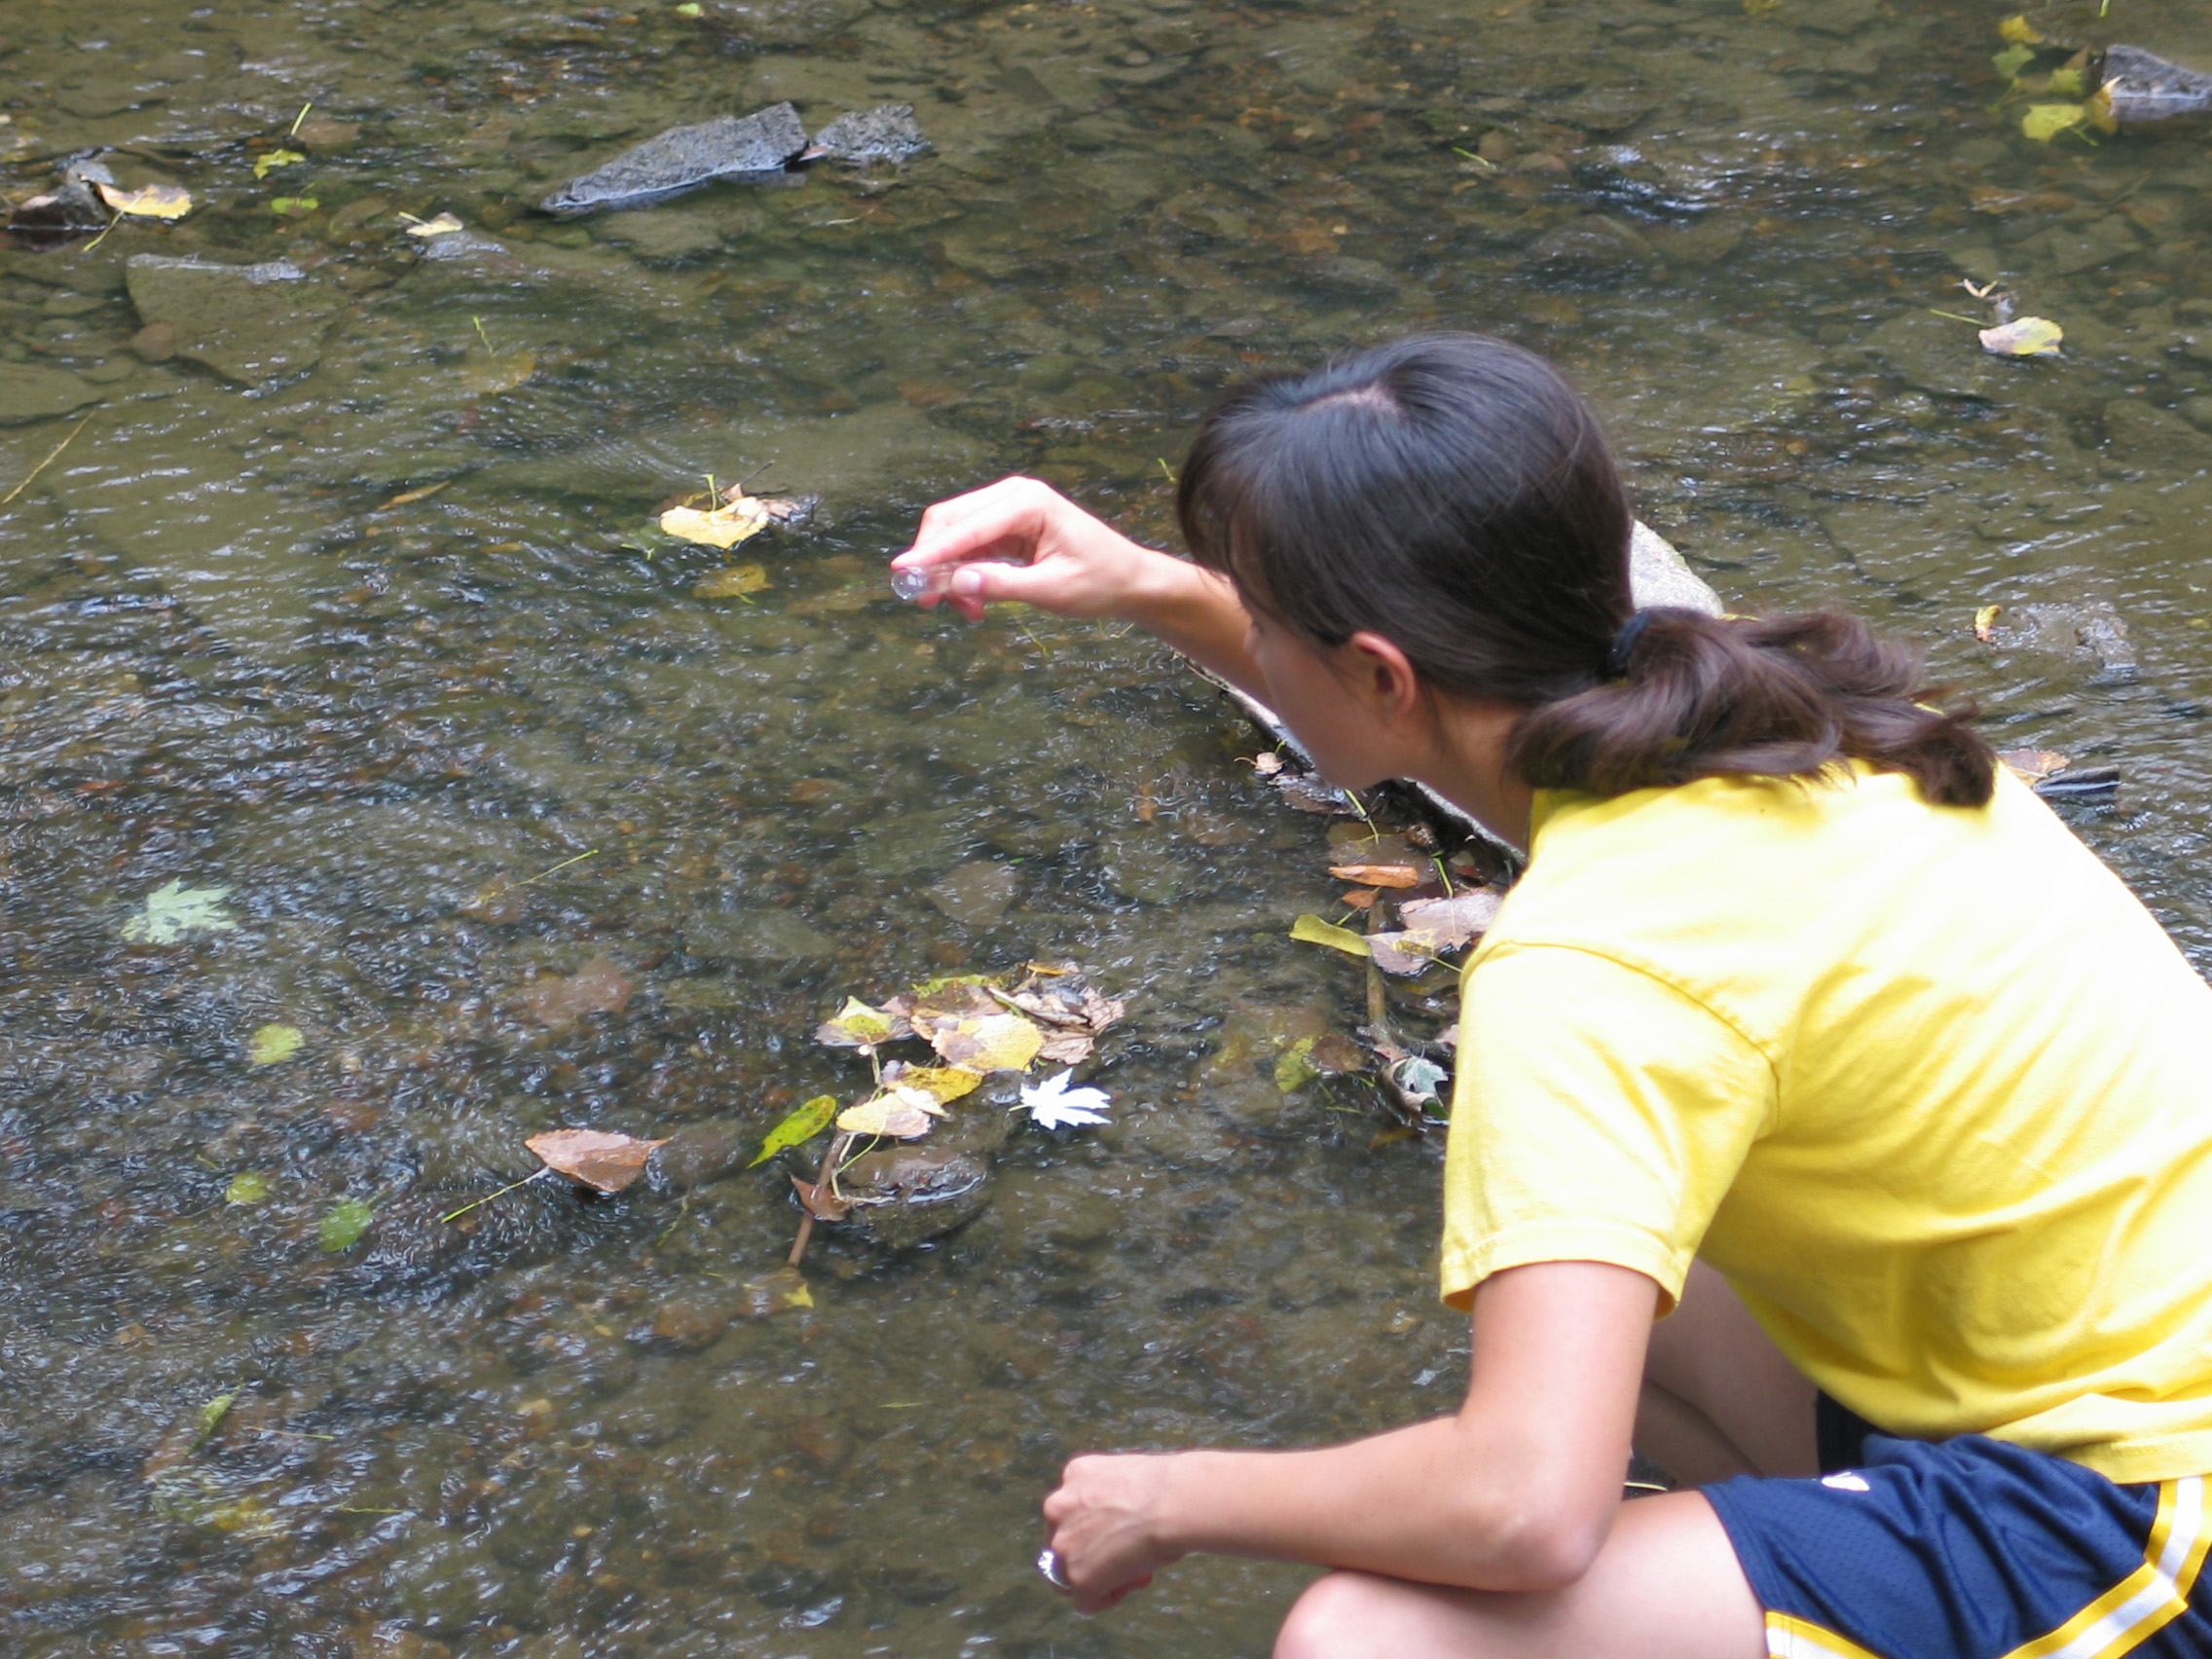 A researcher crouched down in a shallow freshwater stream. They're taking a sample of the water.